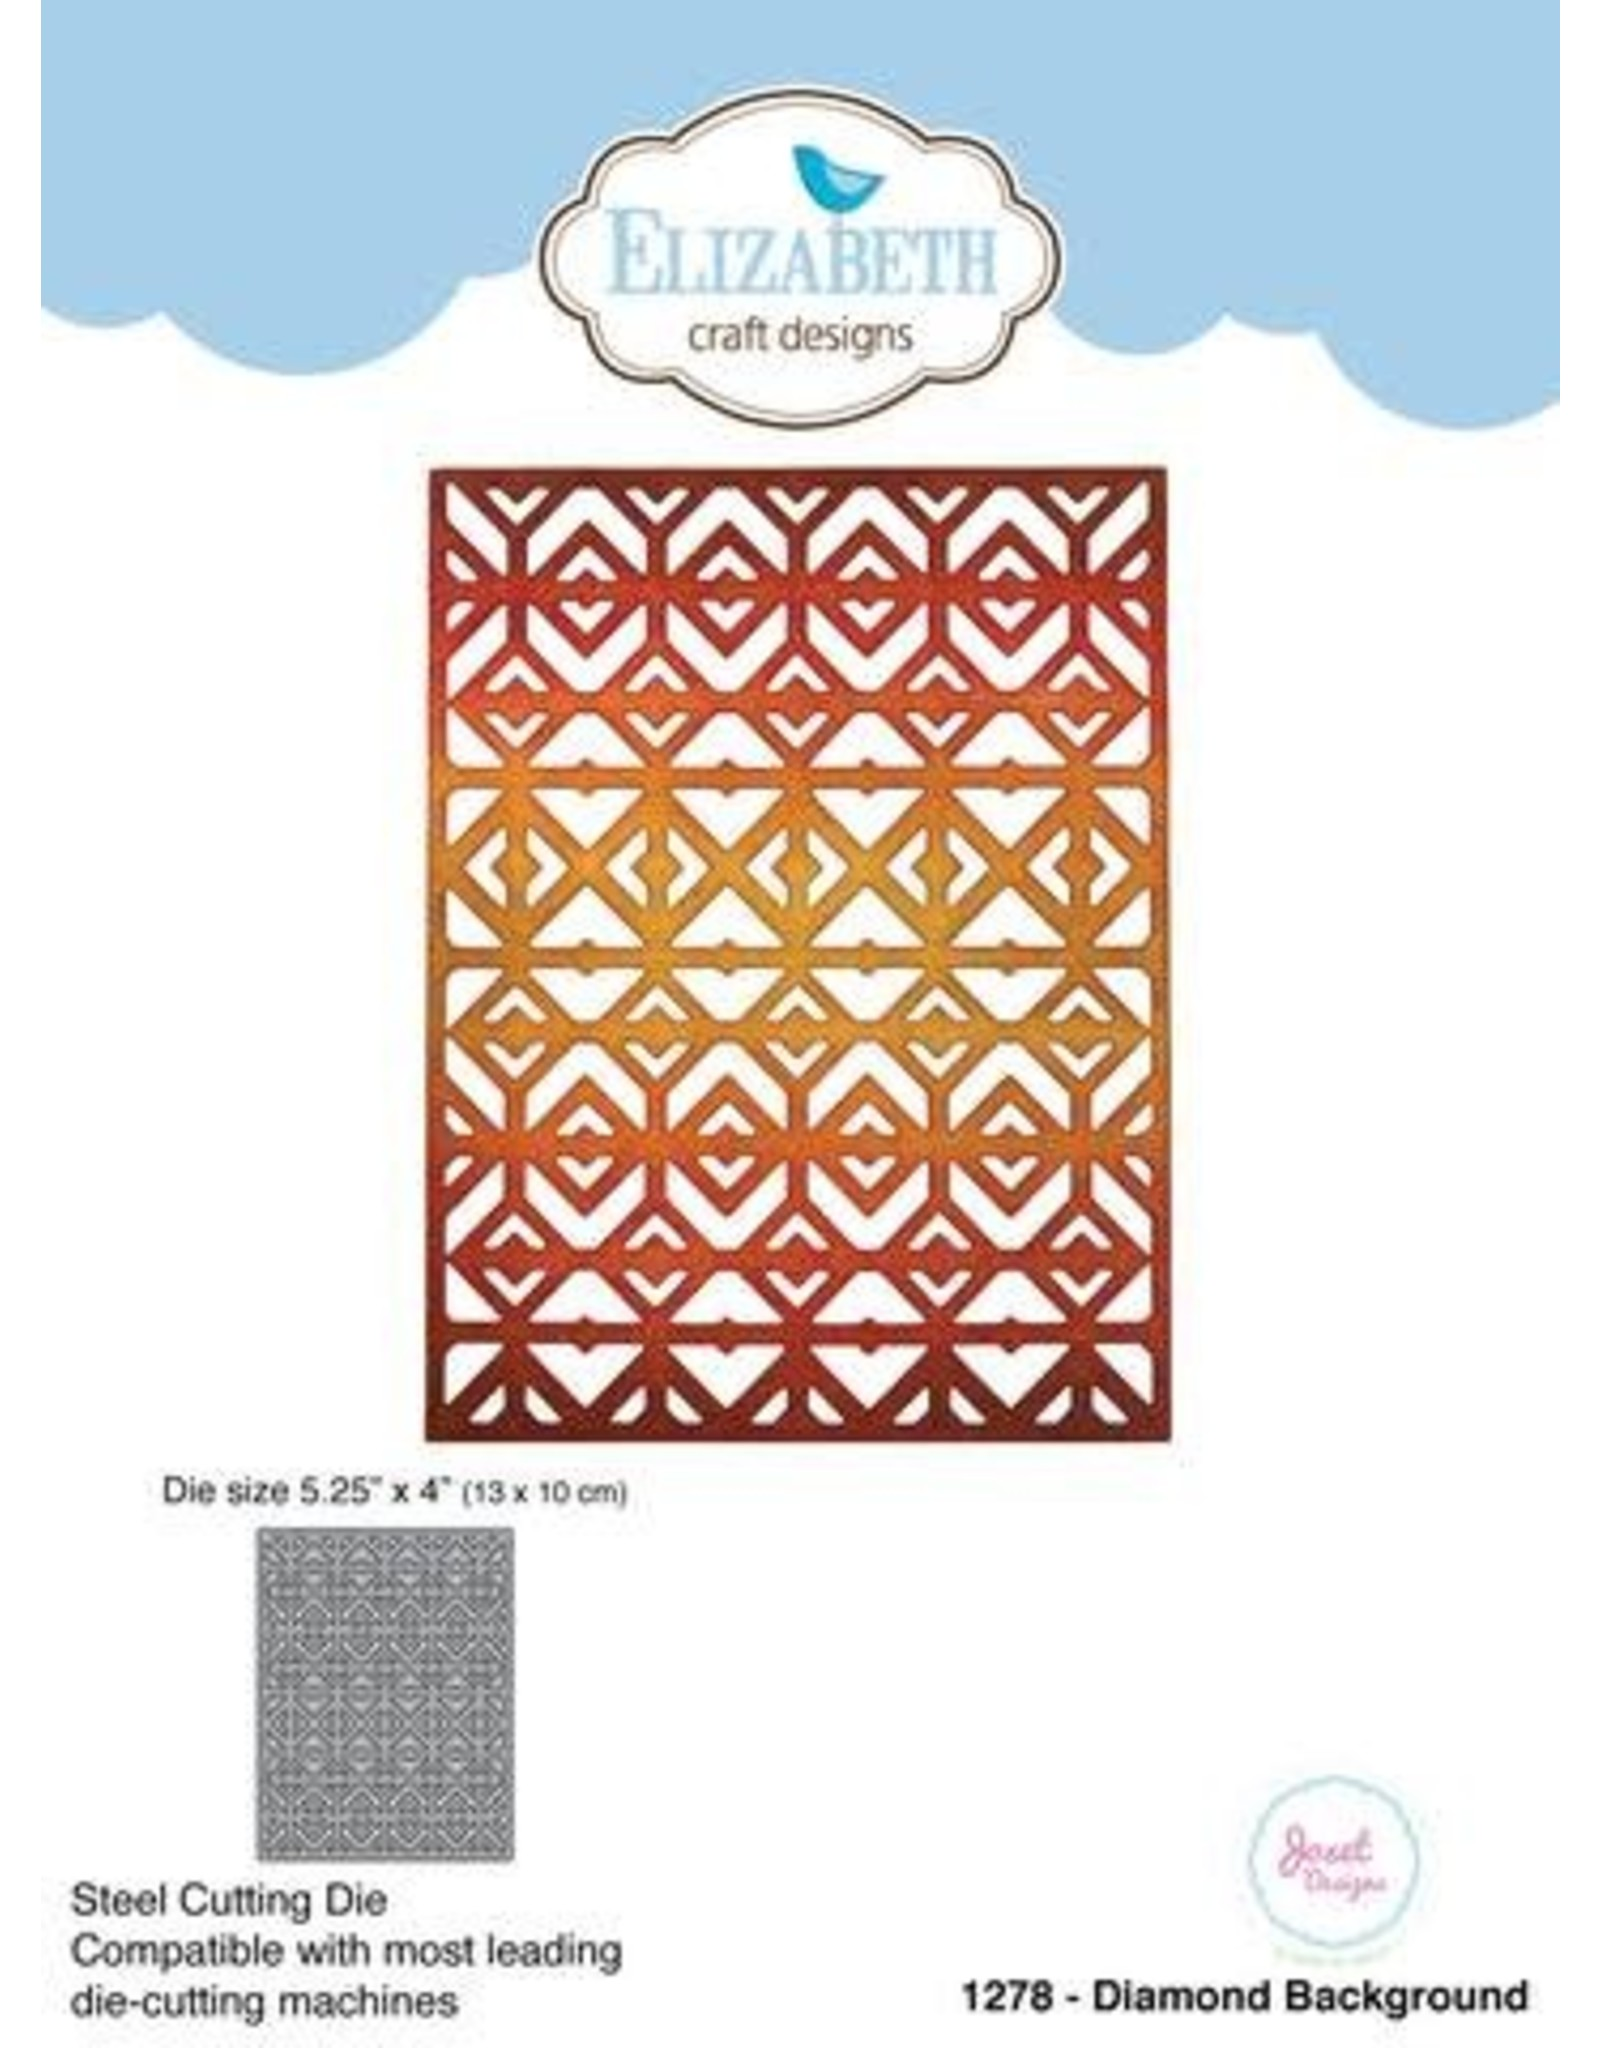 Elizabeth Craft Designs Elizabeth Craft Designs dies Diamond Background 1278